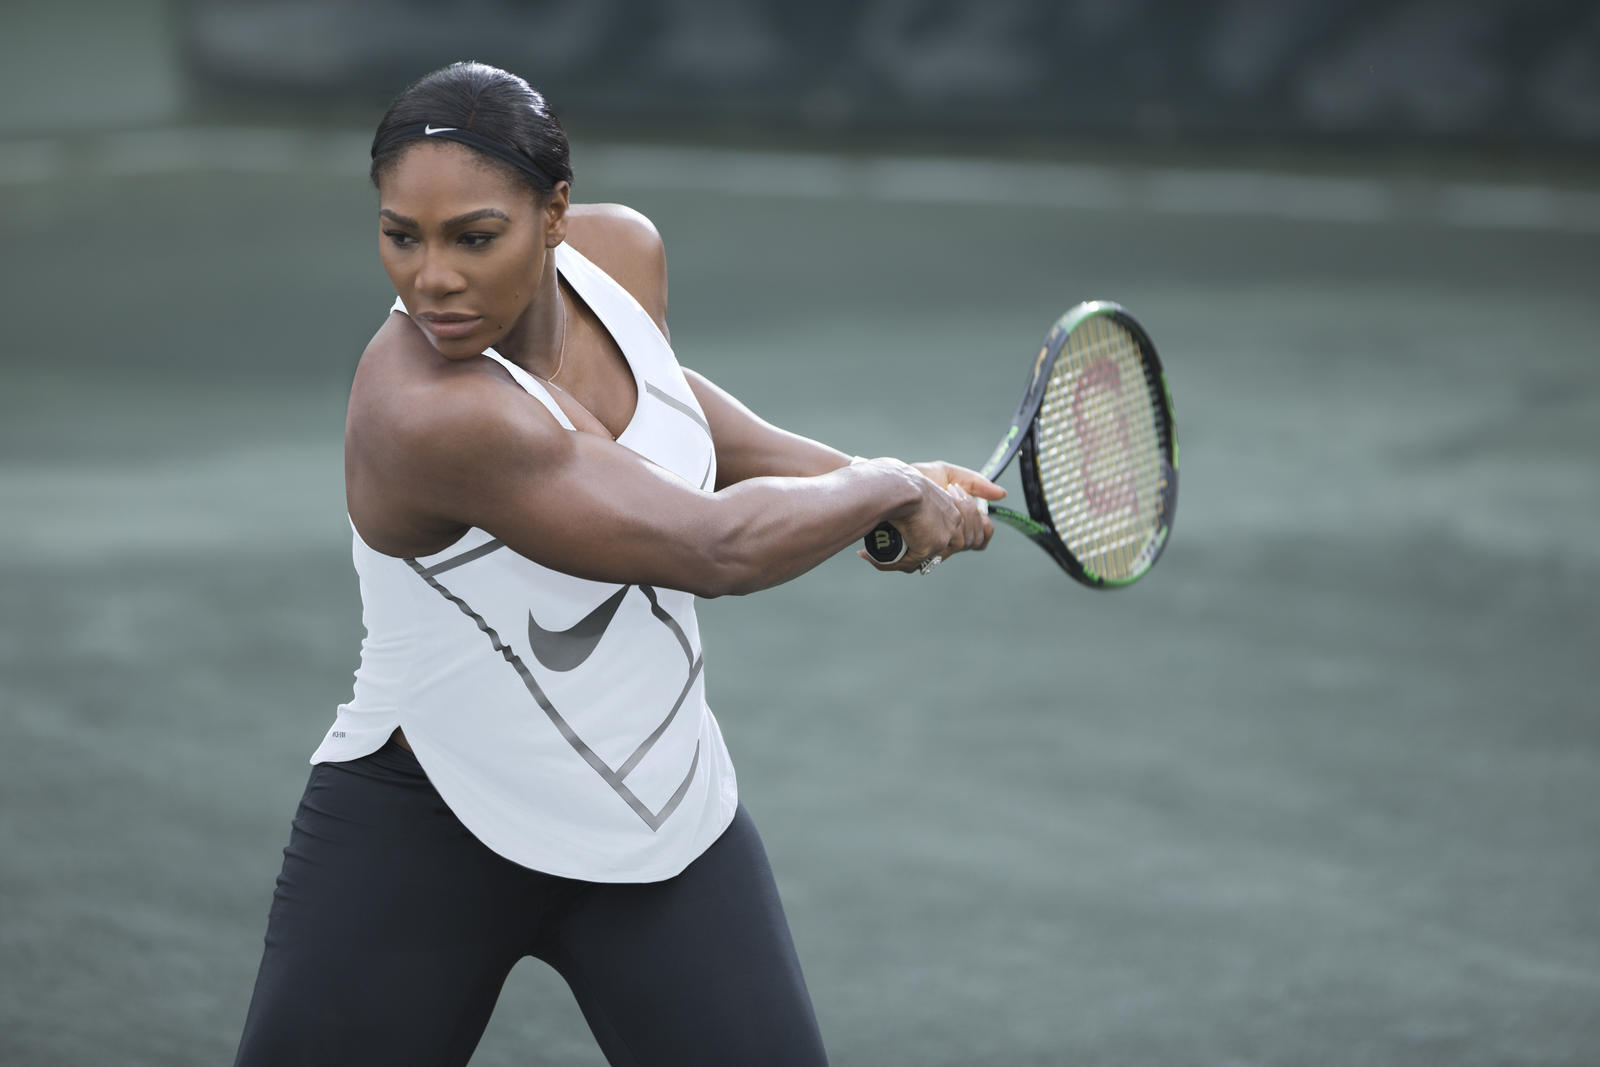 Serena Williams Wimbledon Nike Training